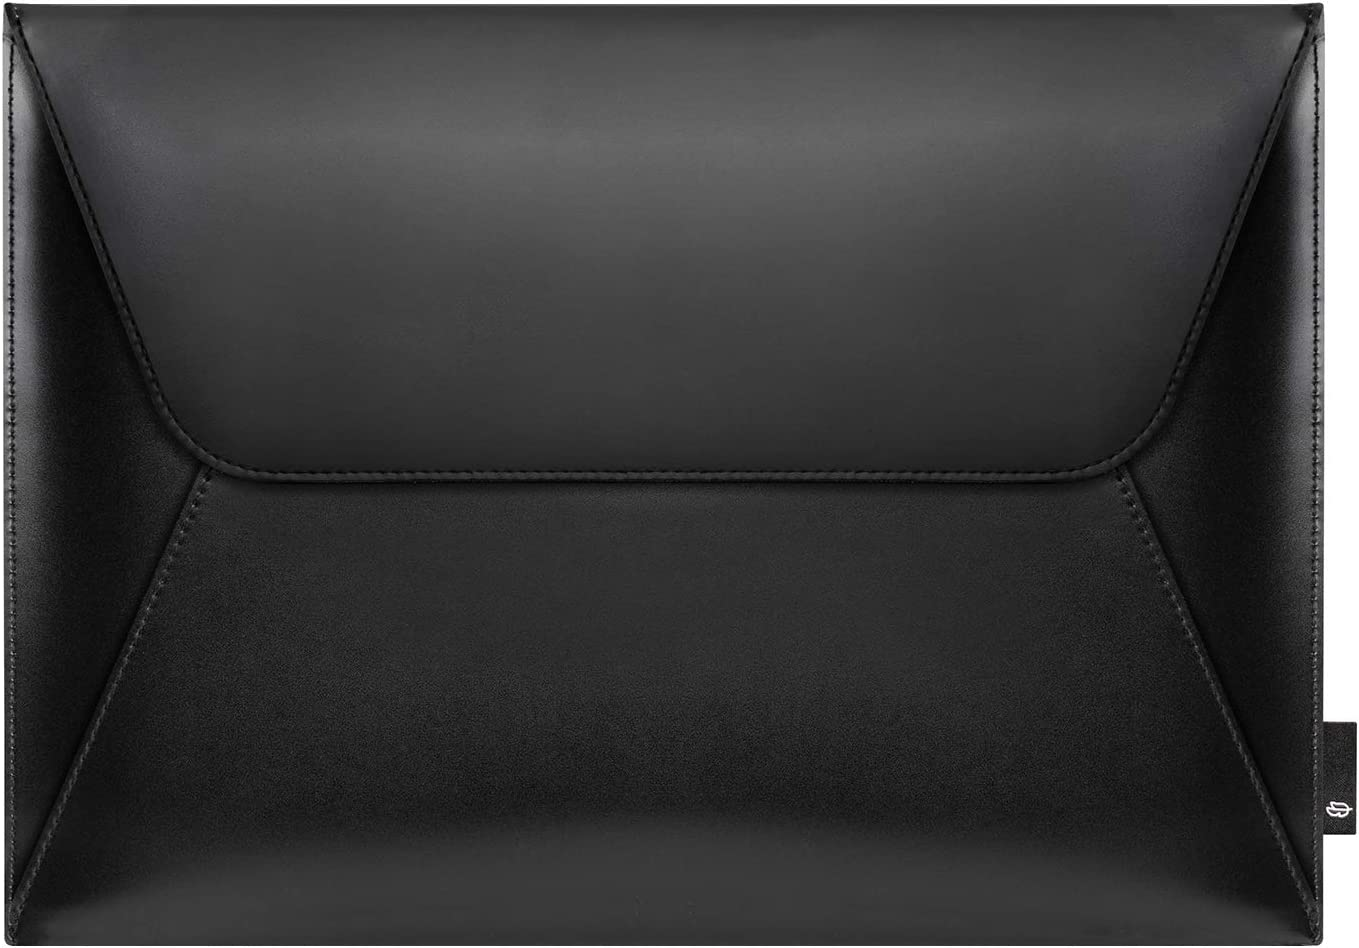 Comfyable Leather Laptop Clutch, Sleeve for 13-13.3 Inch MacBook Air & MacBook Pro - Envelope Computer Case for Mac, Black